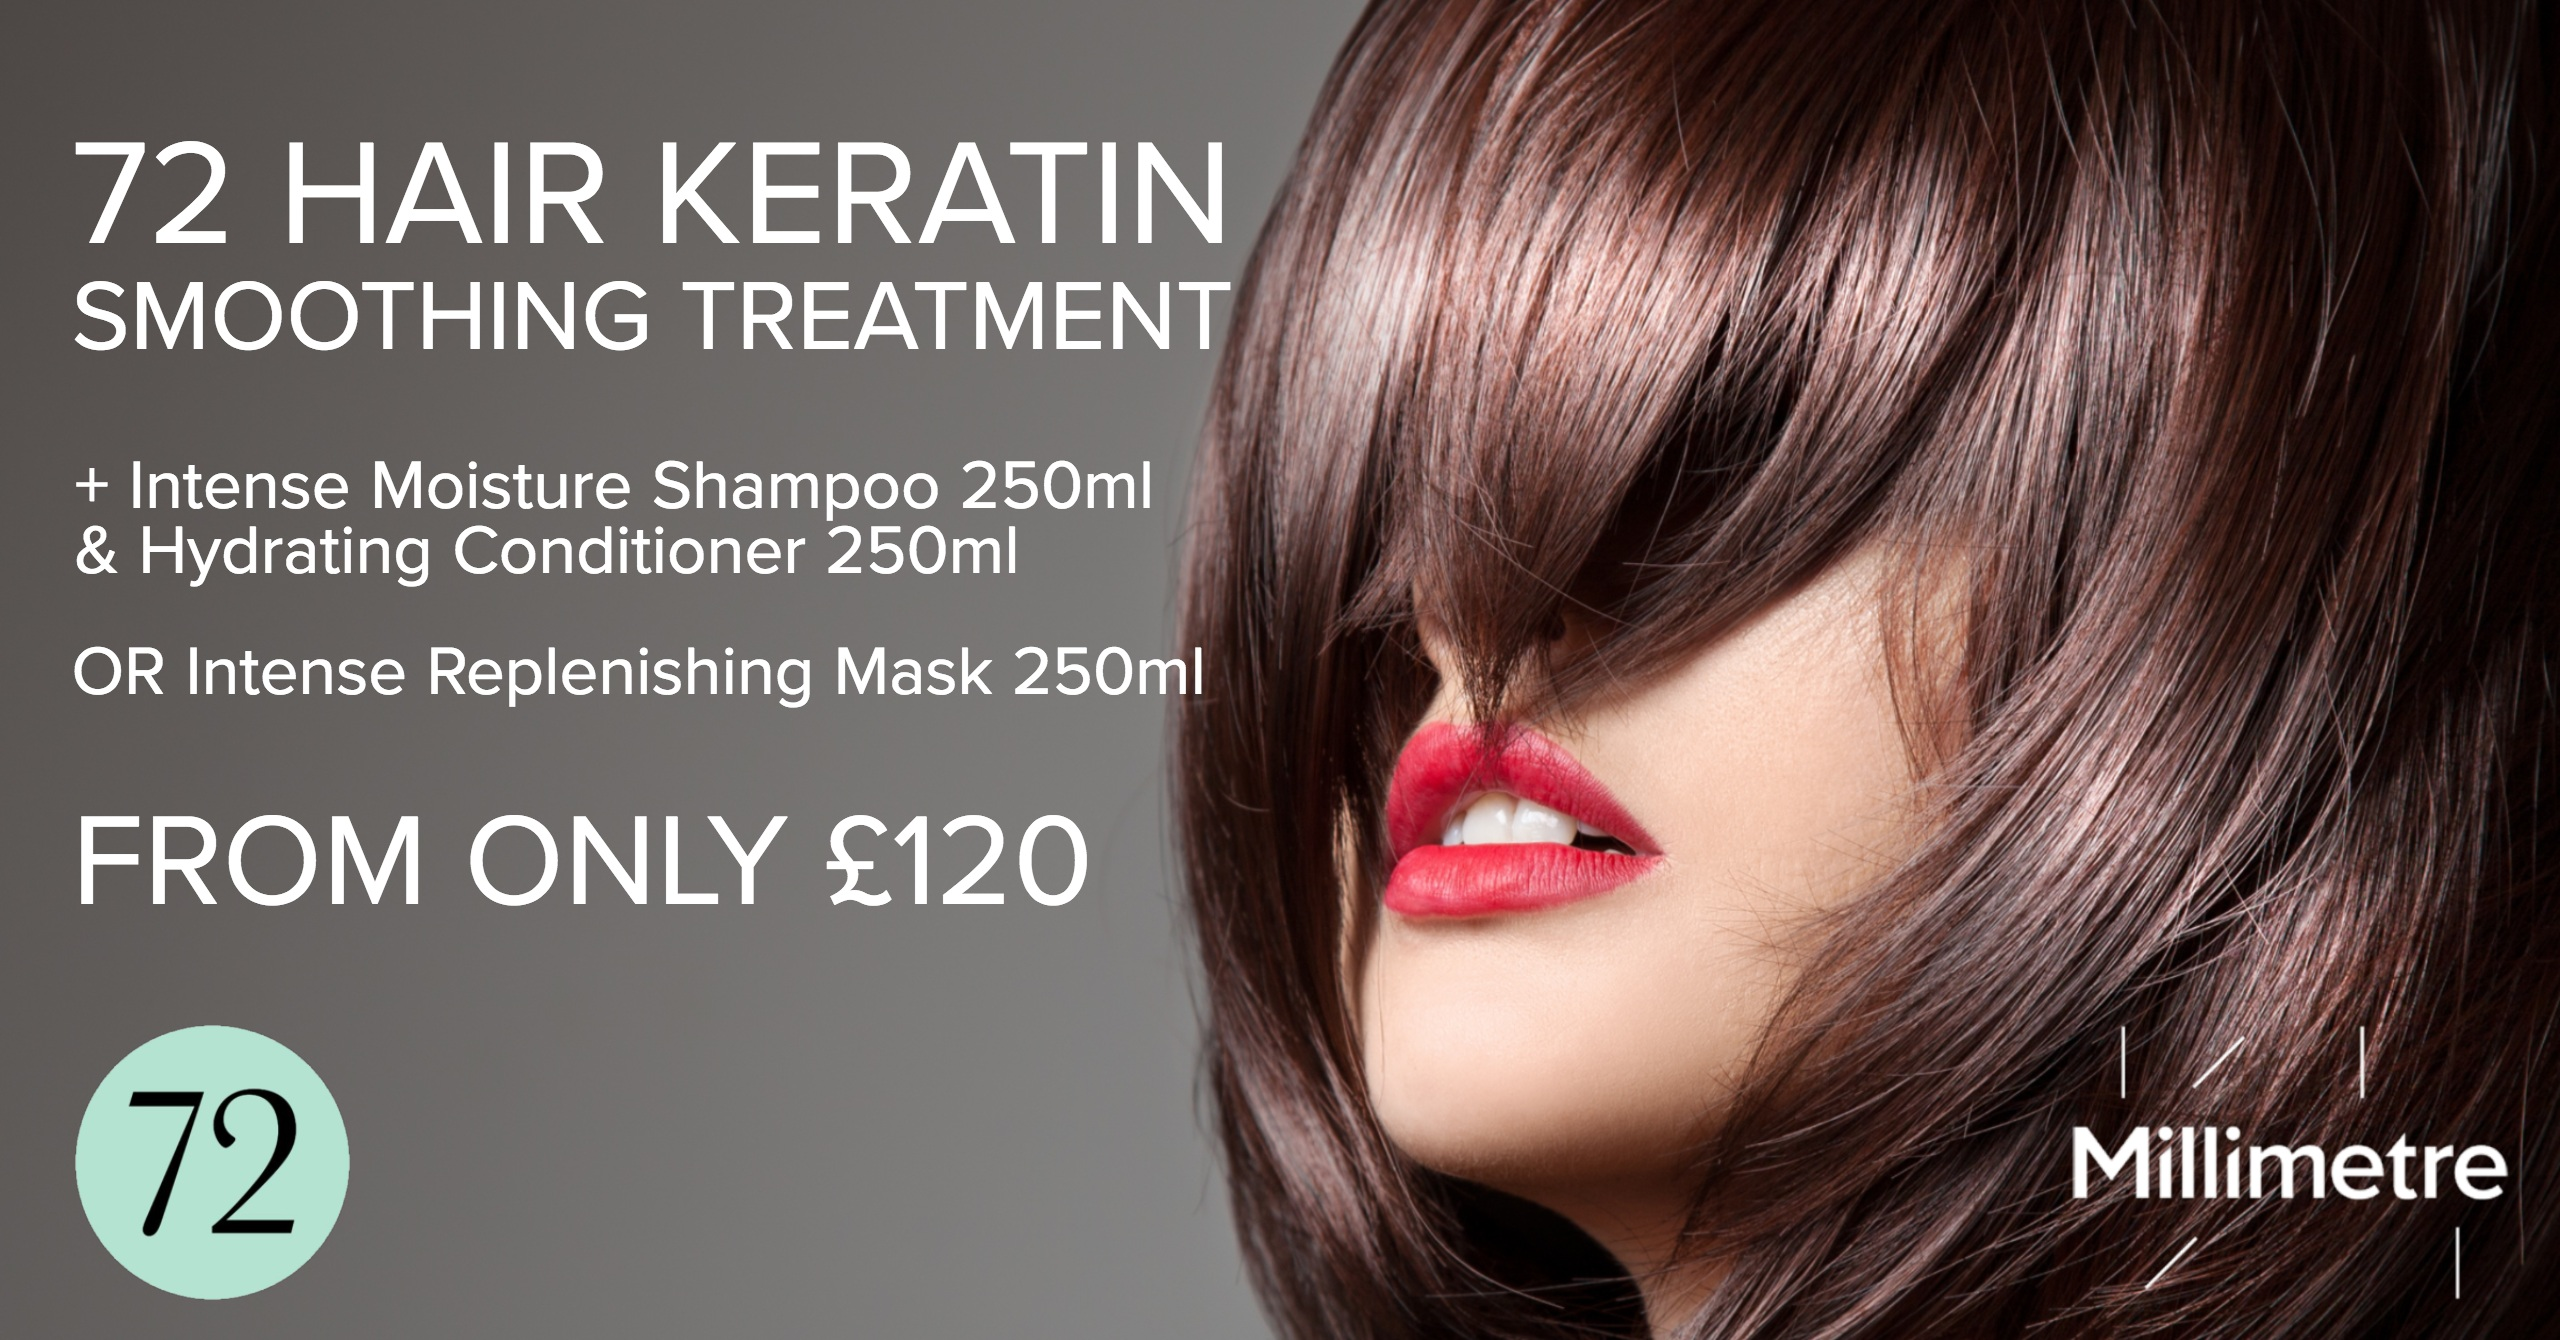 72 Hair Keratin Offer